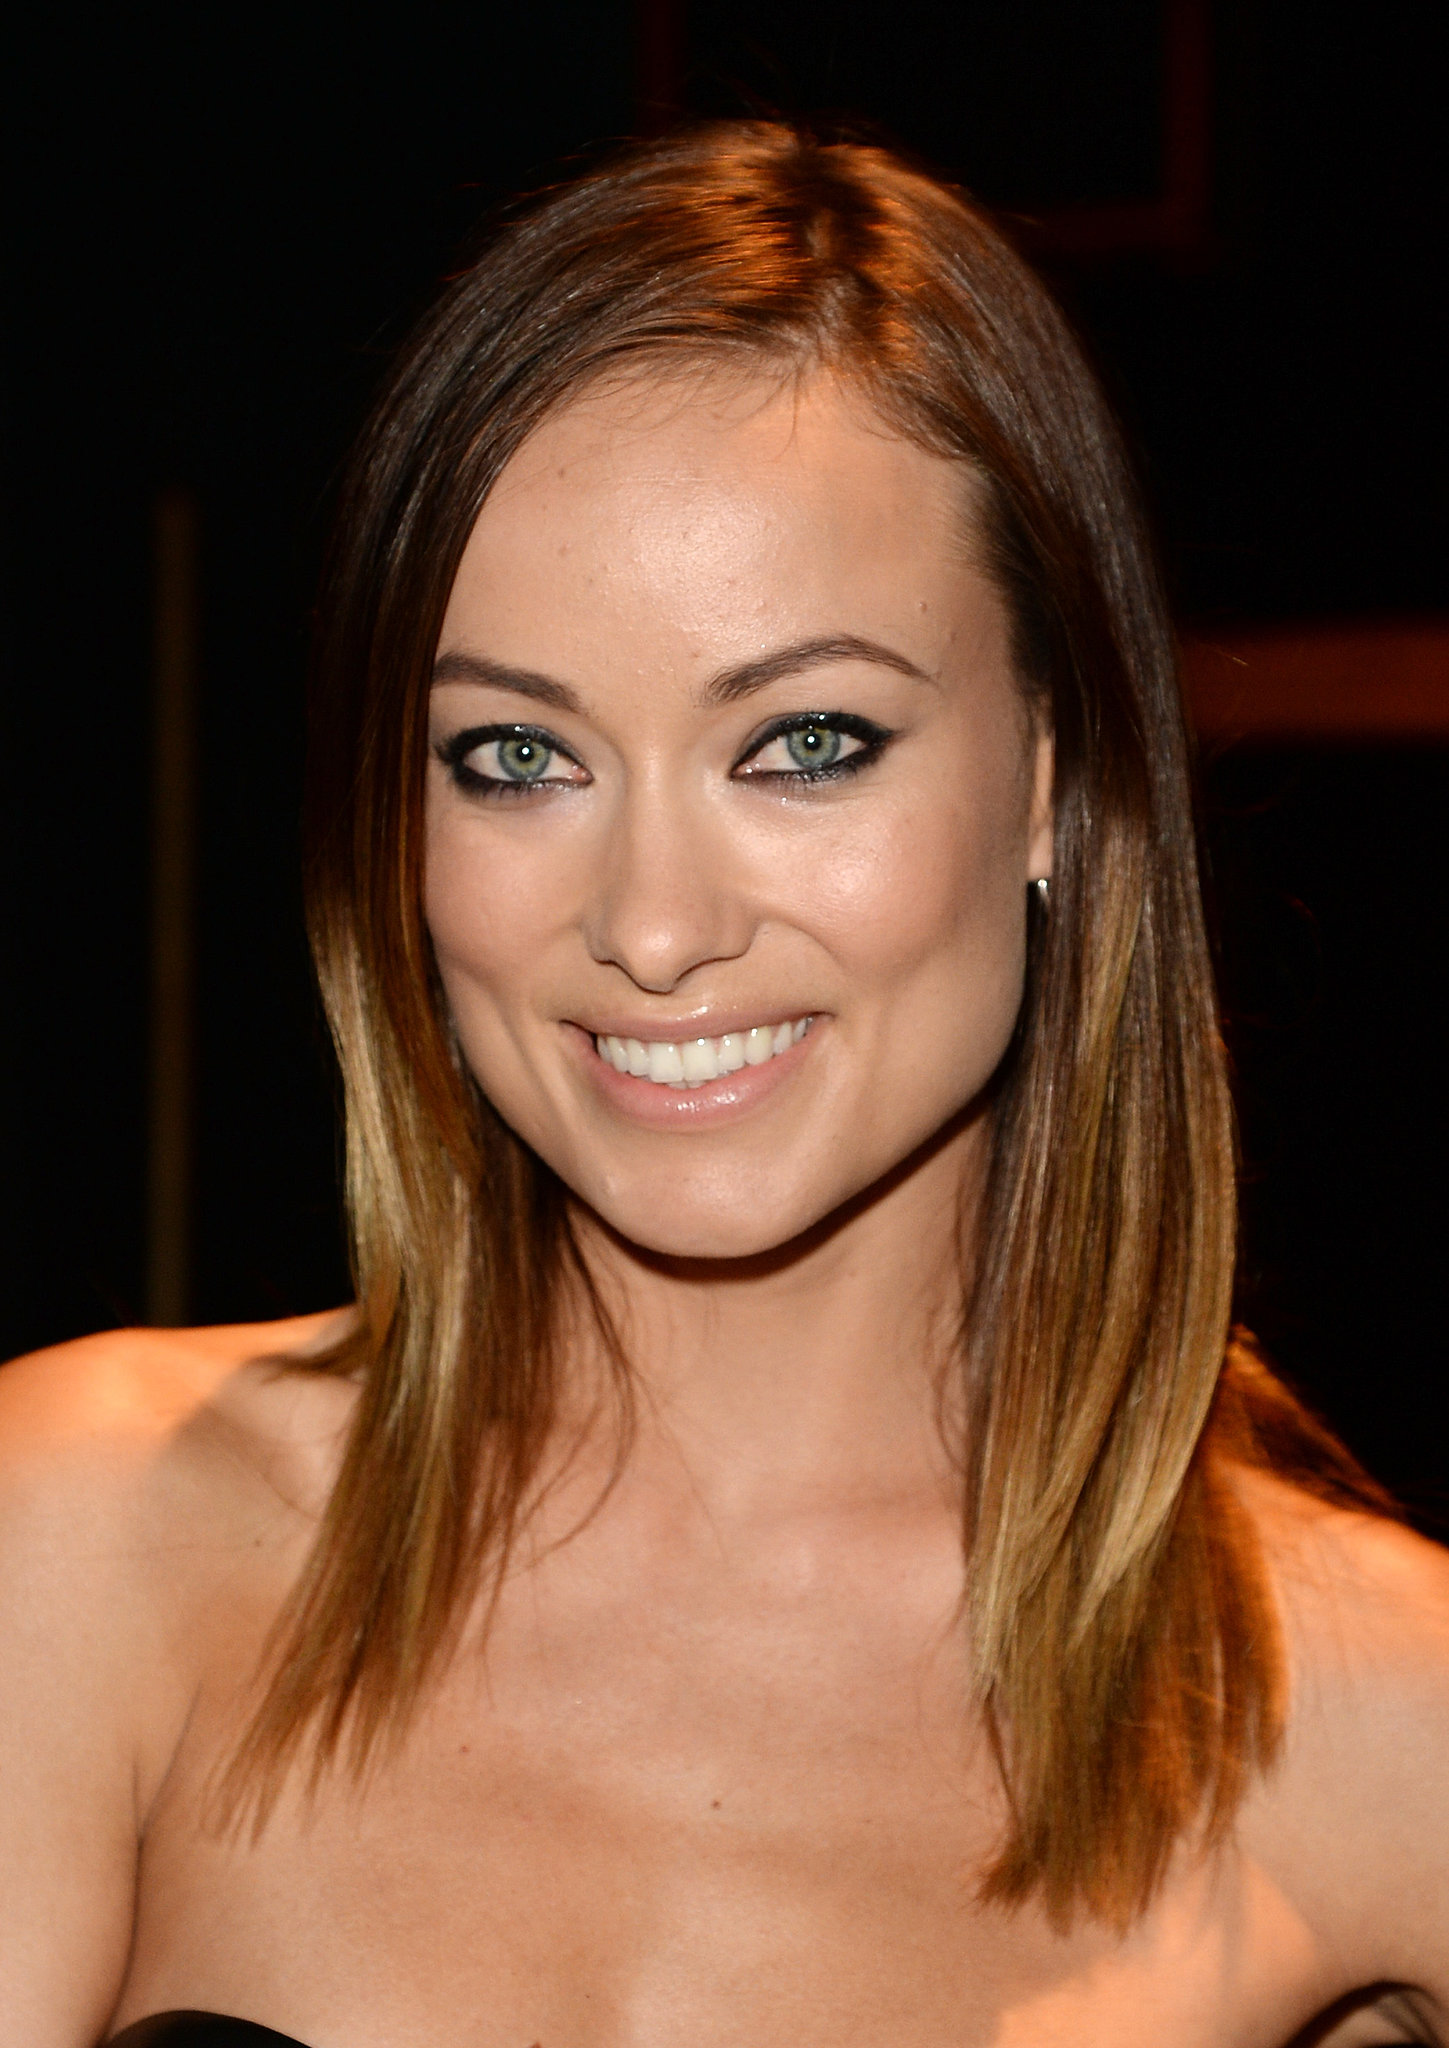 With her subtly bronzed skin and sun-kissed highlights, Olivia Wilde was the picture of Summer perfection at the Guys Choice Awards.